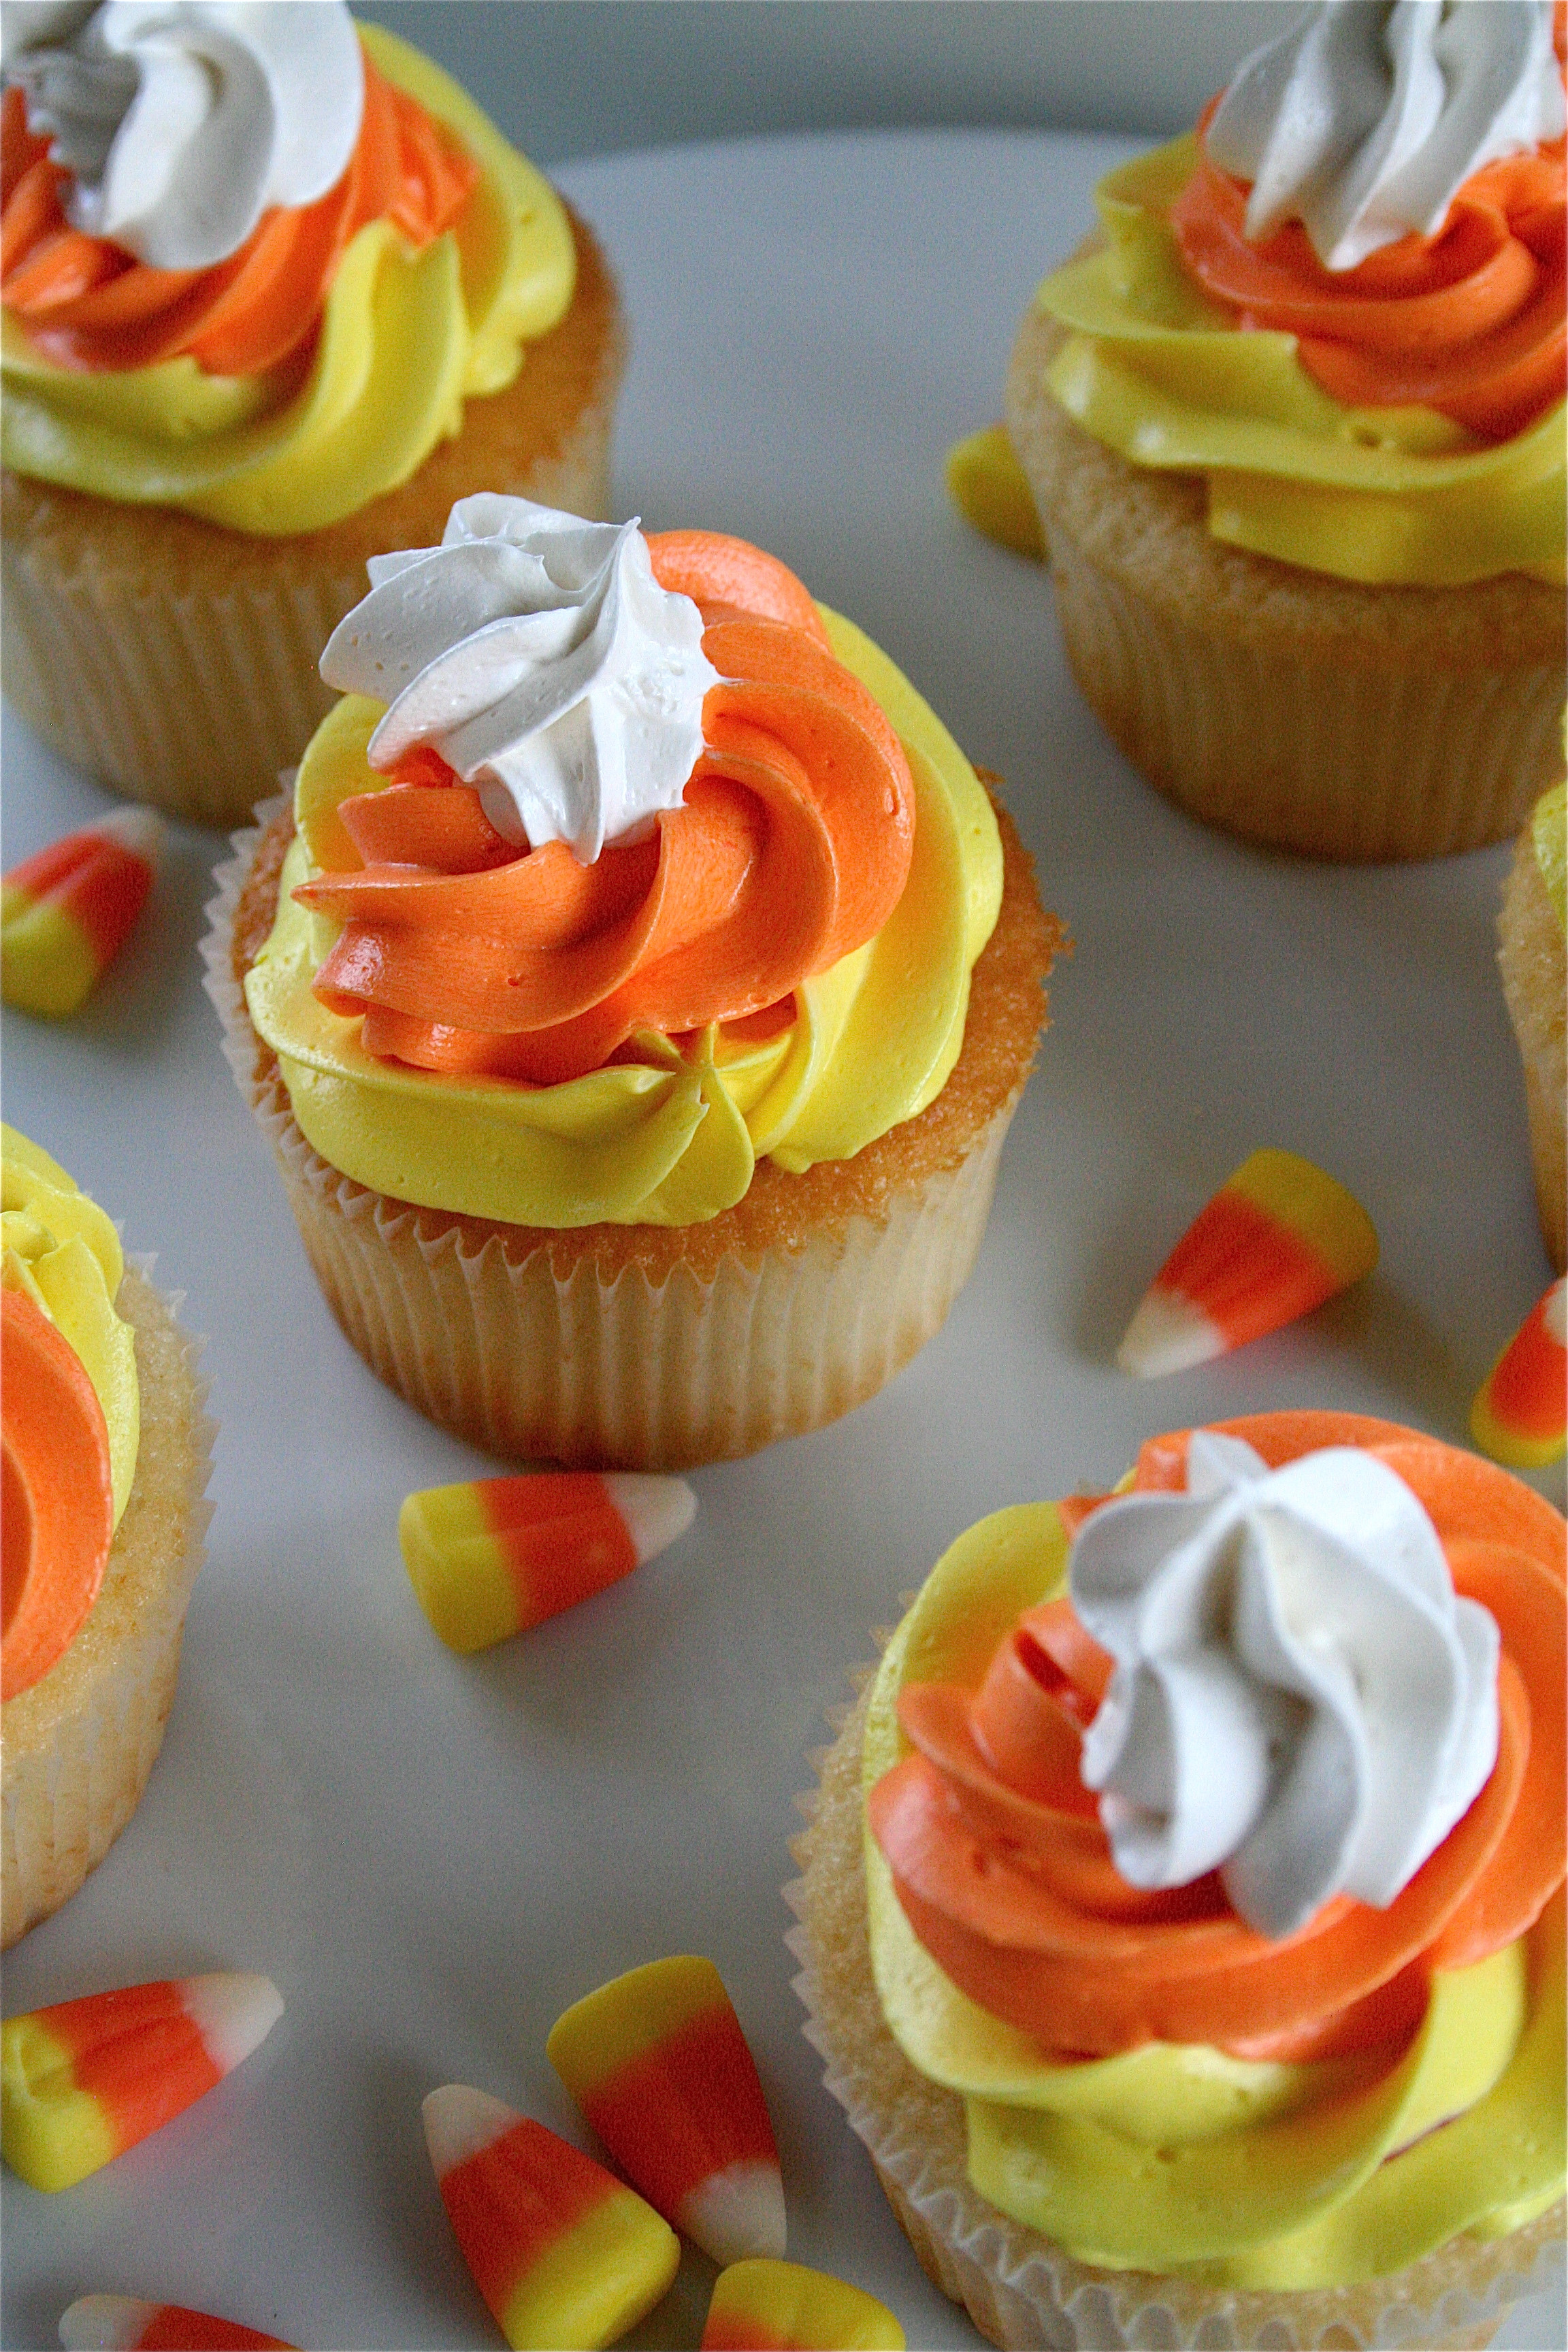 Recipe For Halloween Cupcakes  28 Cute Halloween Cupcakes Easy Recipes for Halloween